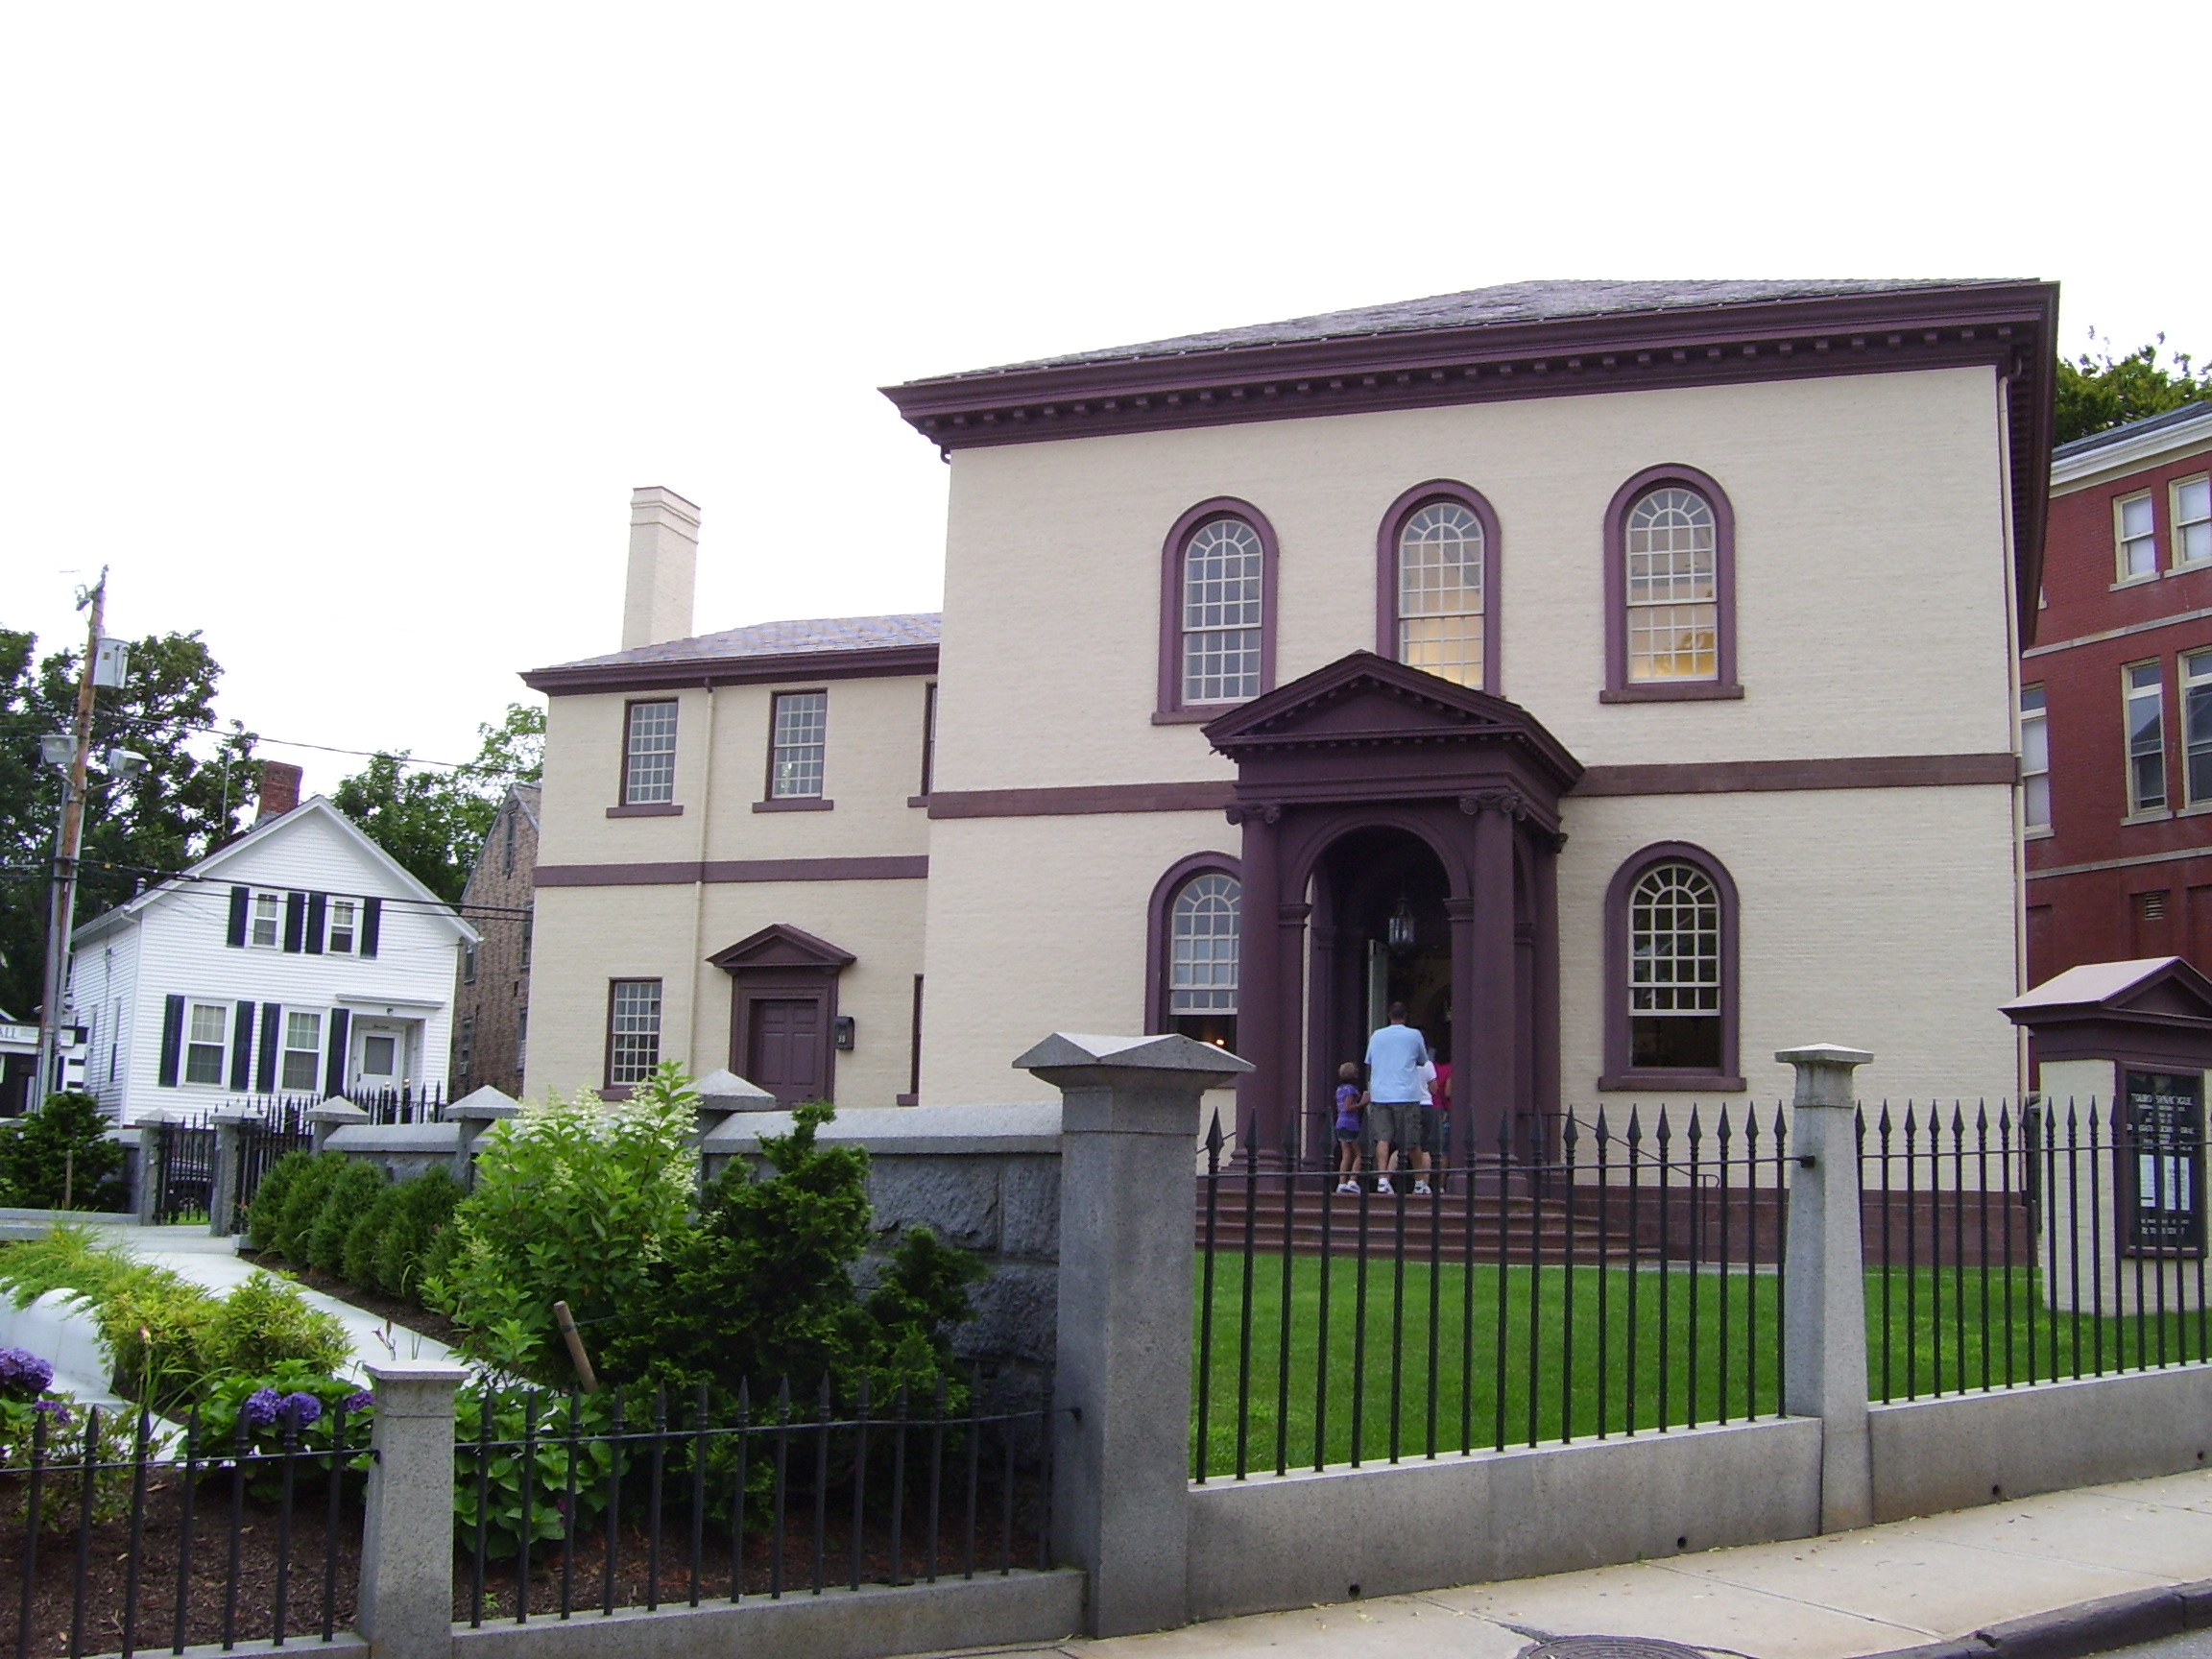 Touro Synagogue in Newport, Rhode Island (Swampyank via Wikimedia Commons)